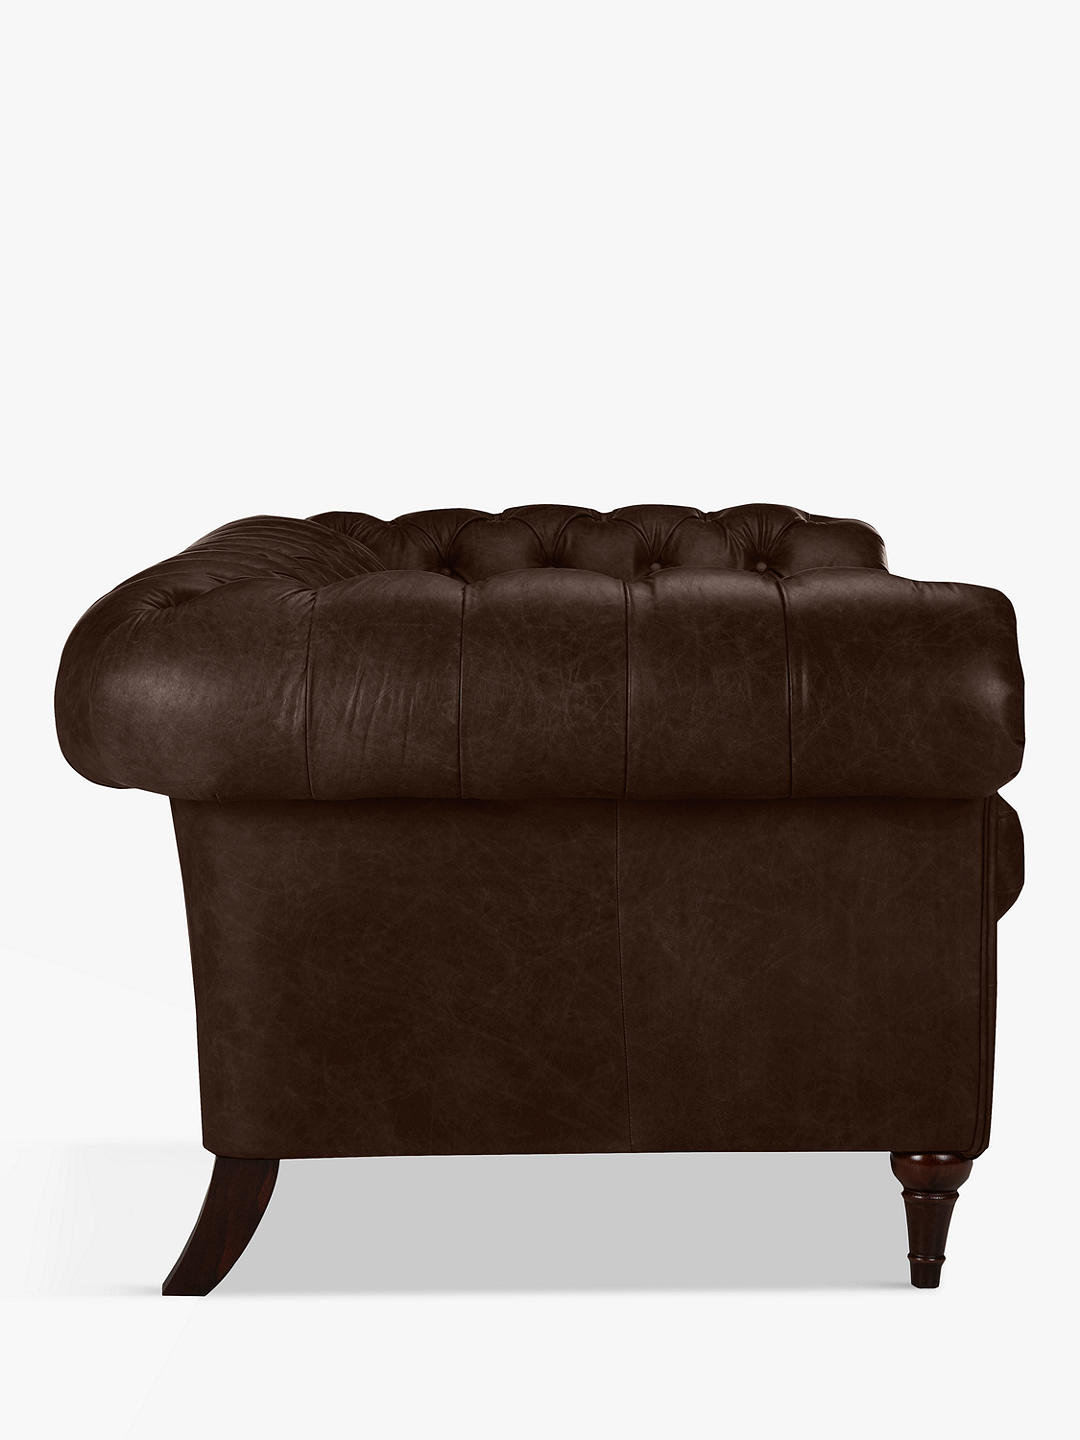 Buy John Lewis & Partners Cromwell Chesterfield Grand 4 Seater Leather Sofa, Dark Leg, Nature Brown Online at johnlewis.com